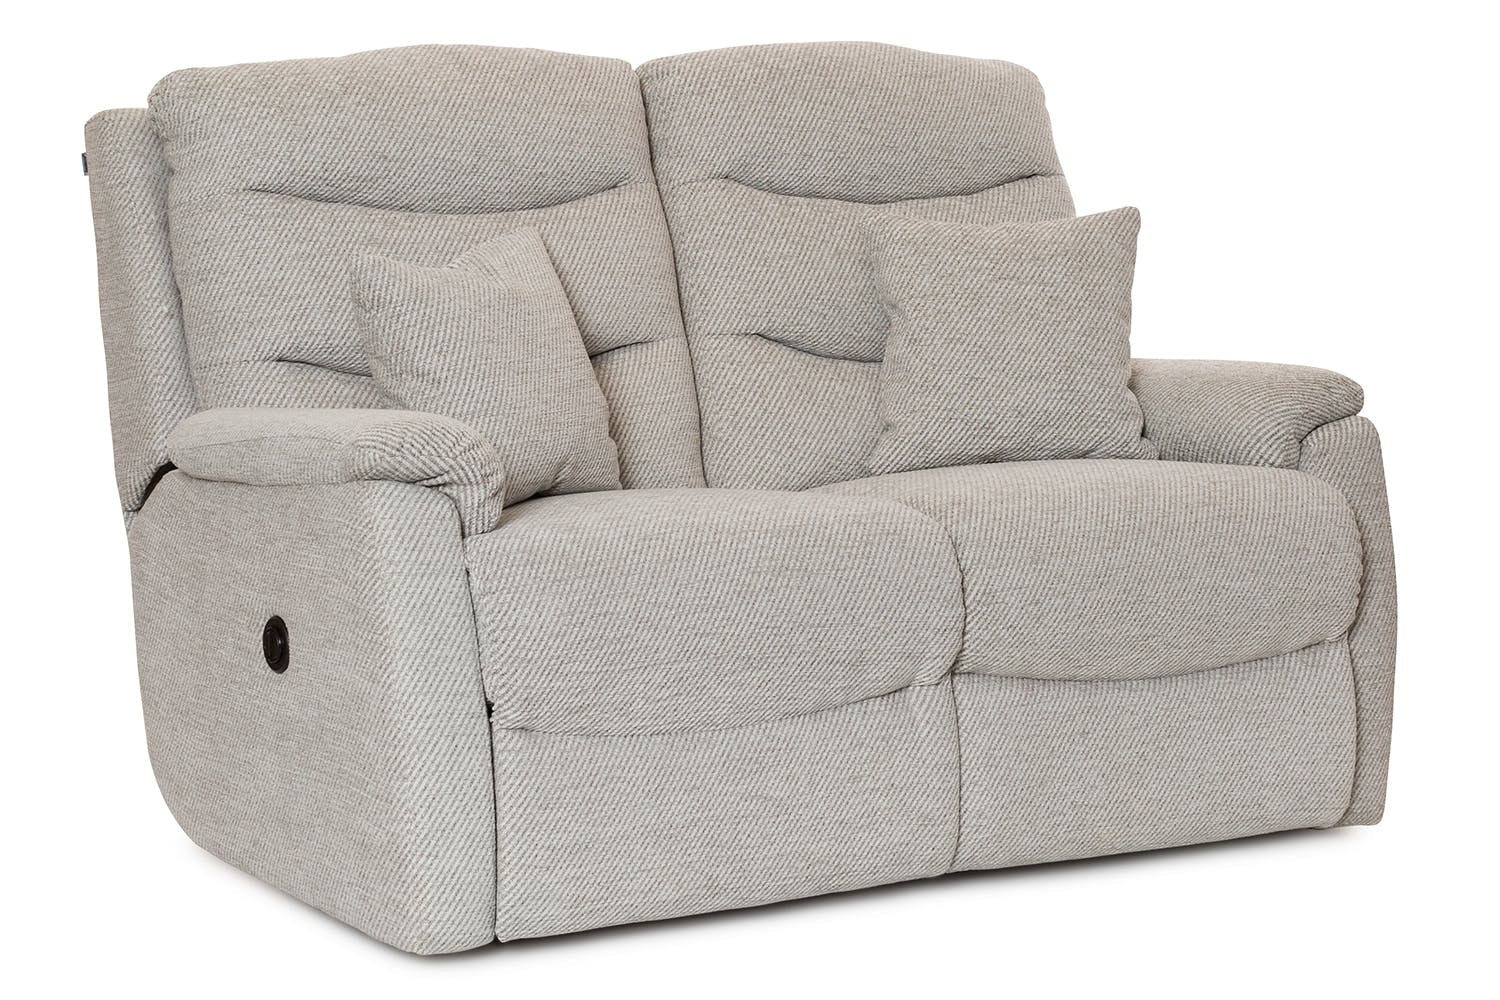 Madora 2 Seater Electric Recliner Sofa